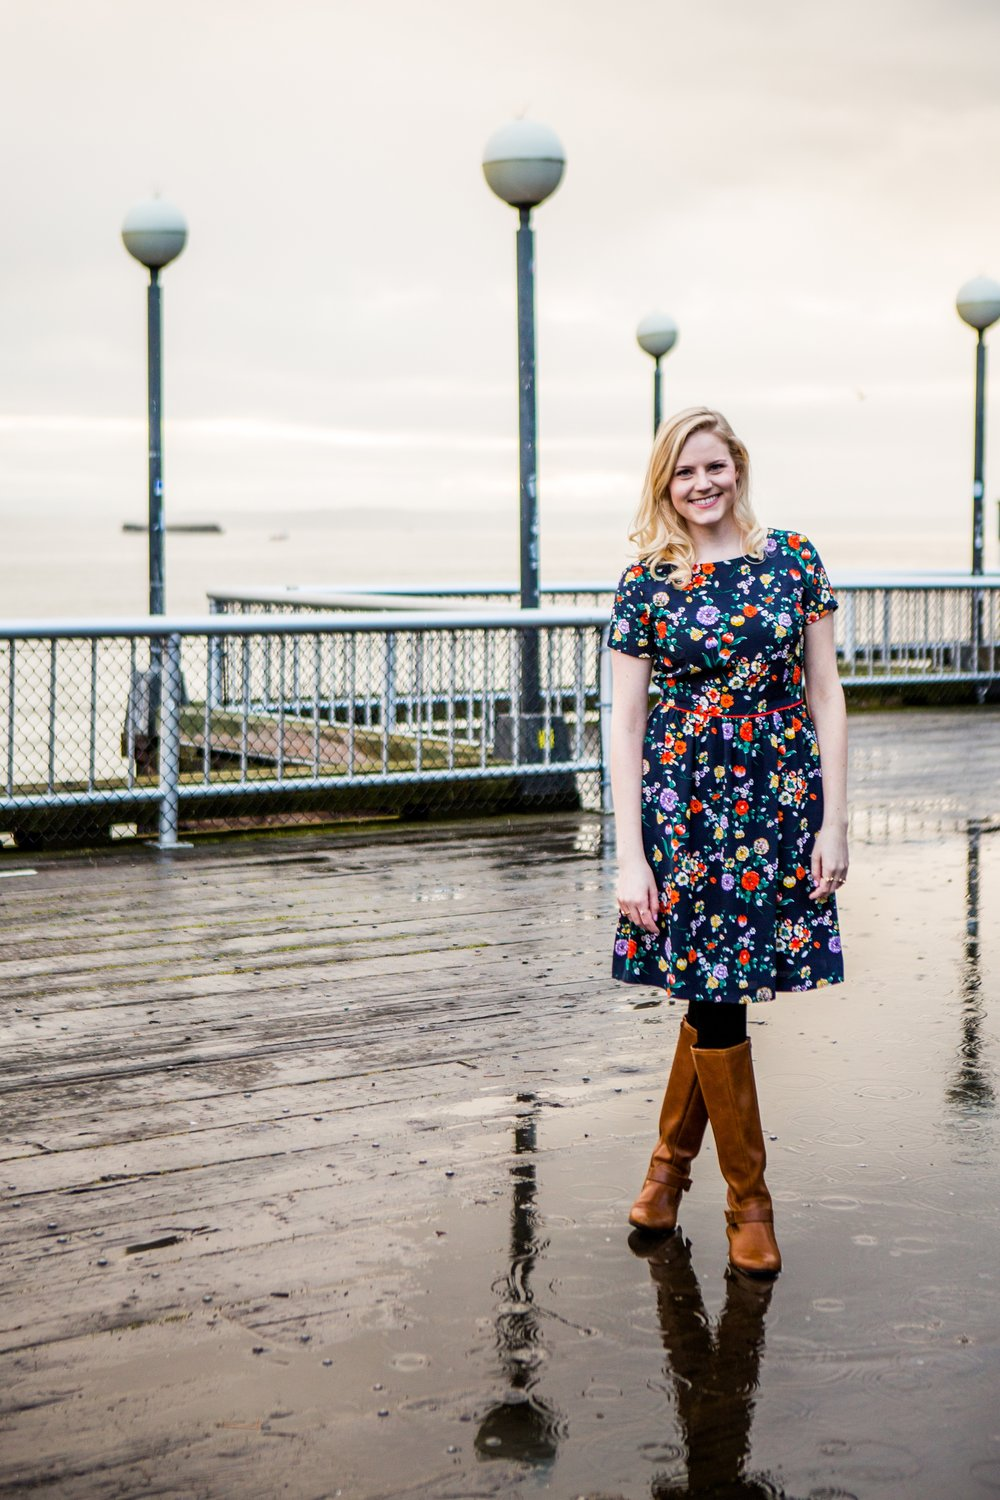 Travel and lifestyle blogger Bri Sul solo traveling around Seattle, Washington. Shot by Jessica with Flytographer, an amazing travel photography service.